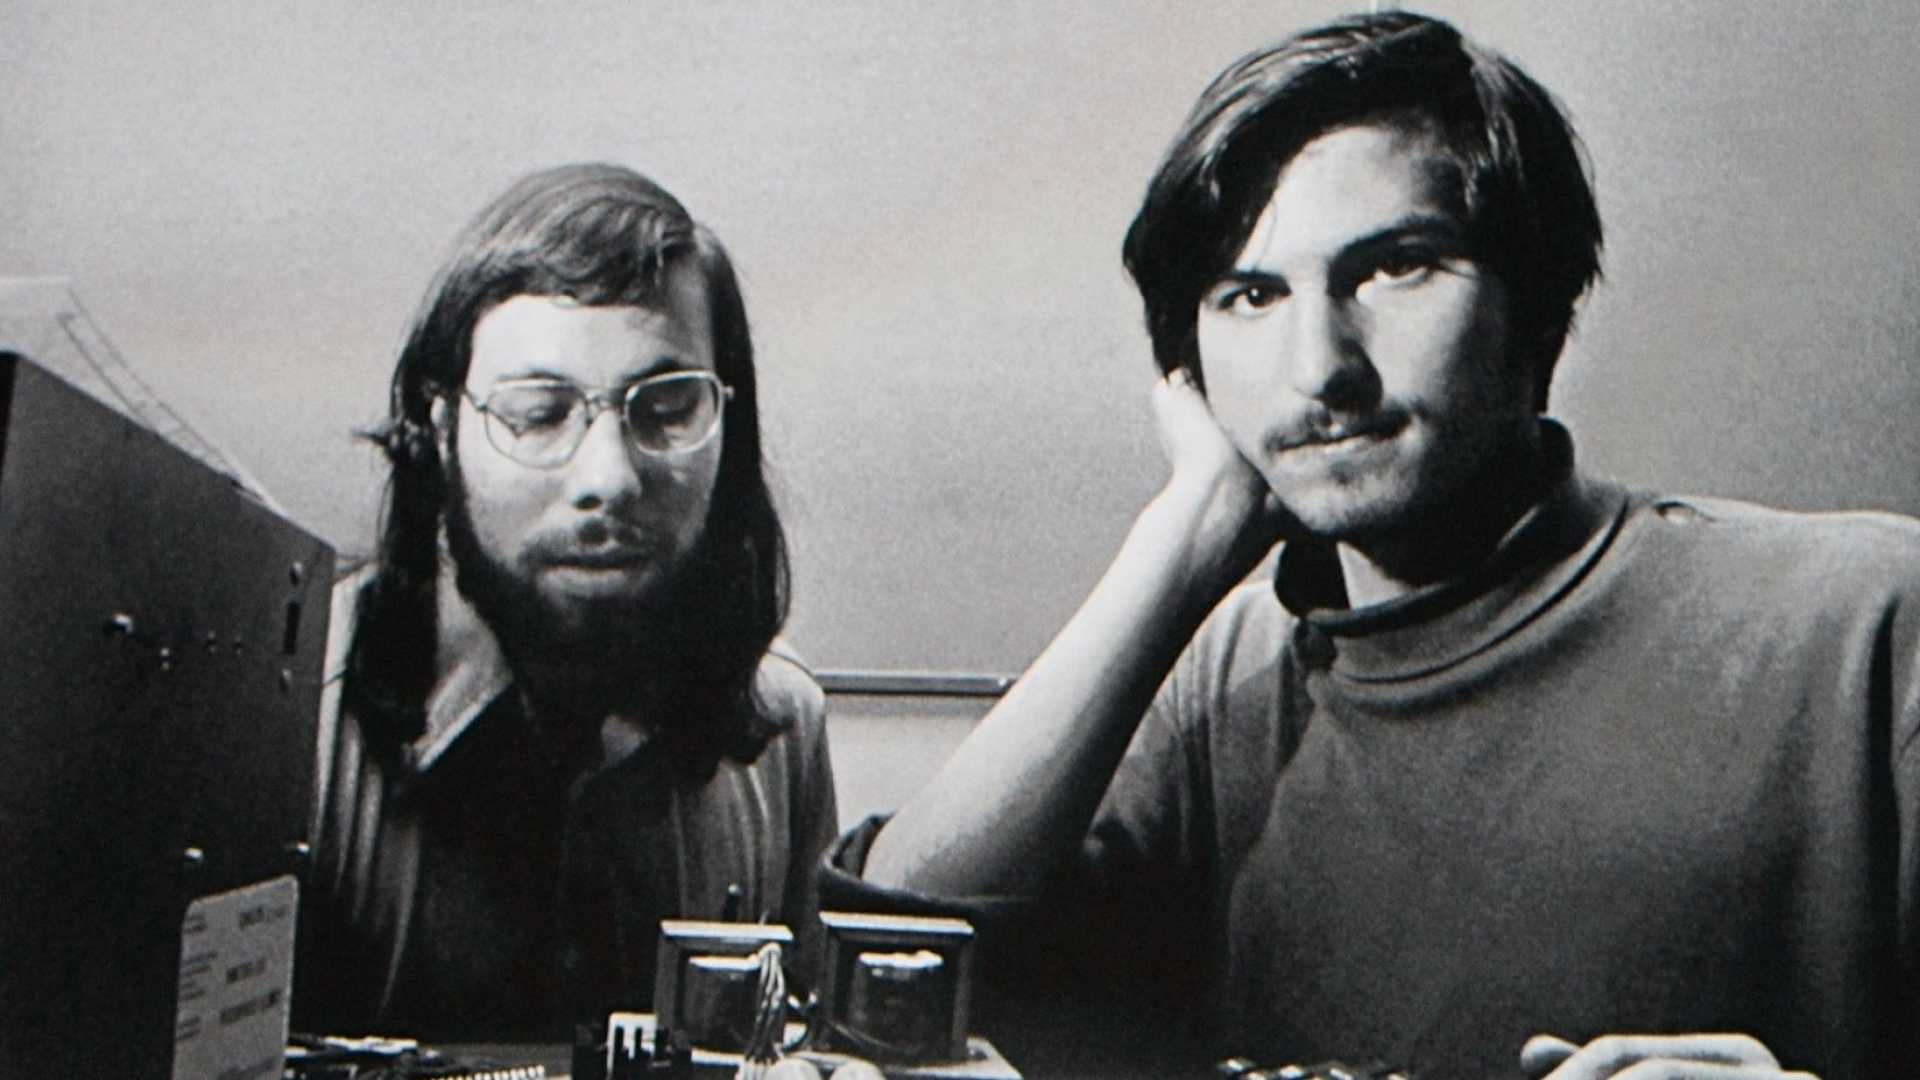 Which Steve Are You: Jobs or Wozniak? Knowing the Answer Helps You Build a Business You Love